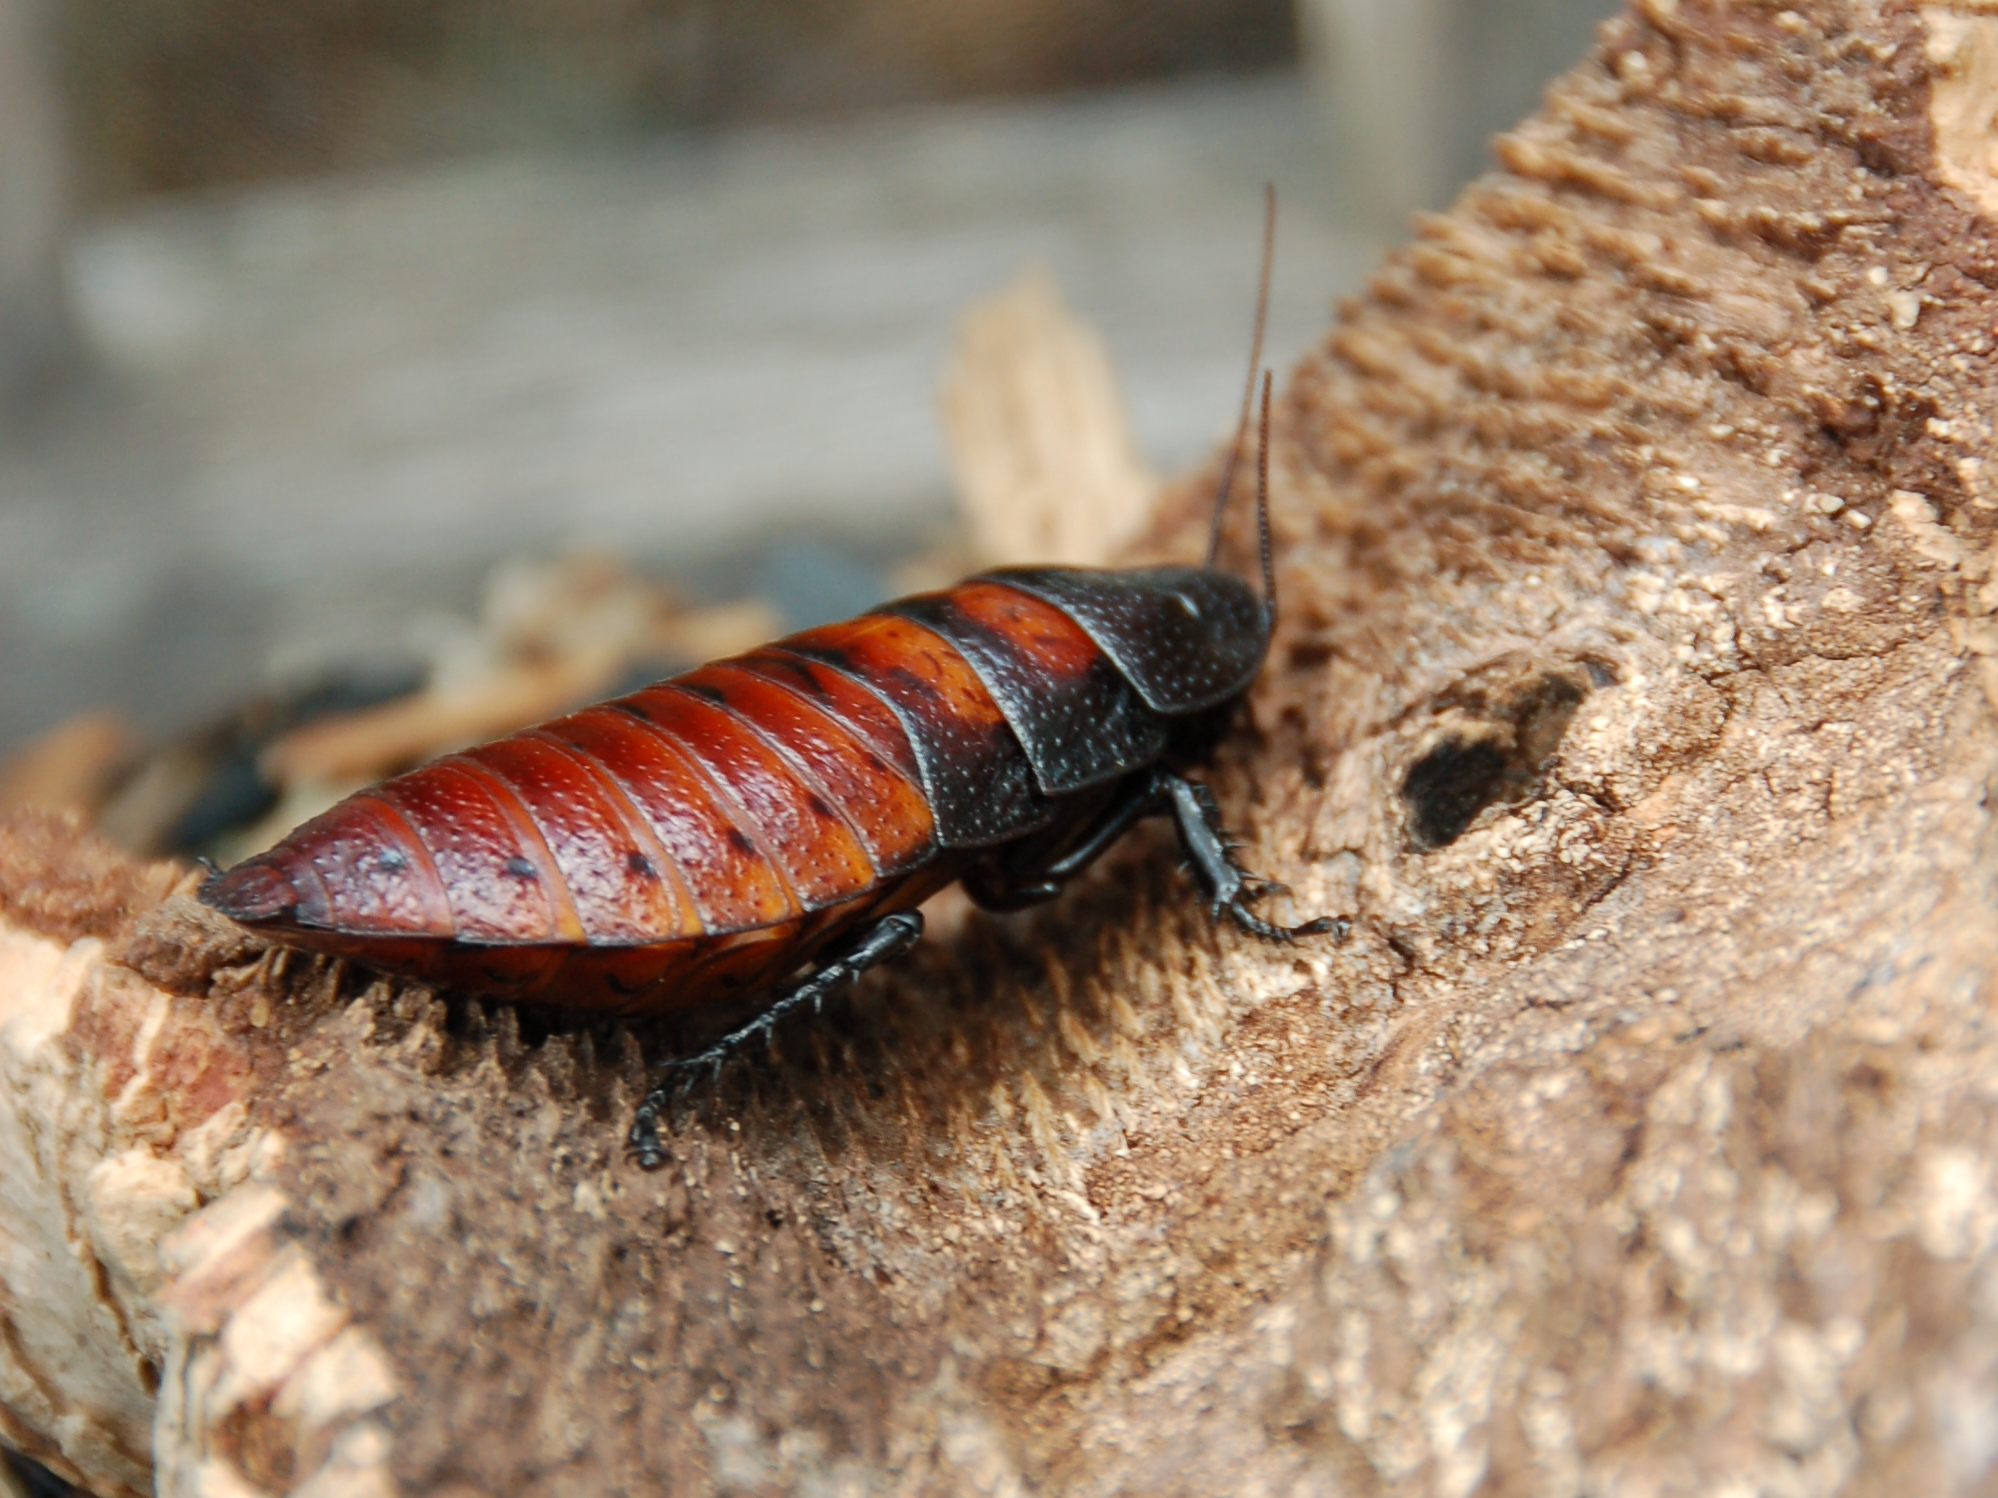 File:Female Madagascar hissing cockroach.JPG - Wikipedia, the free ...